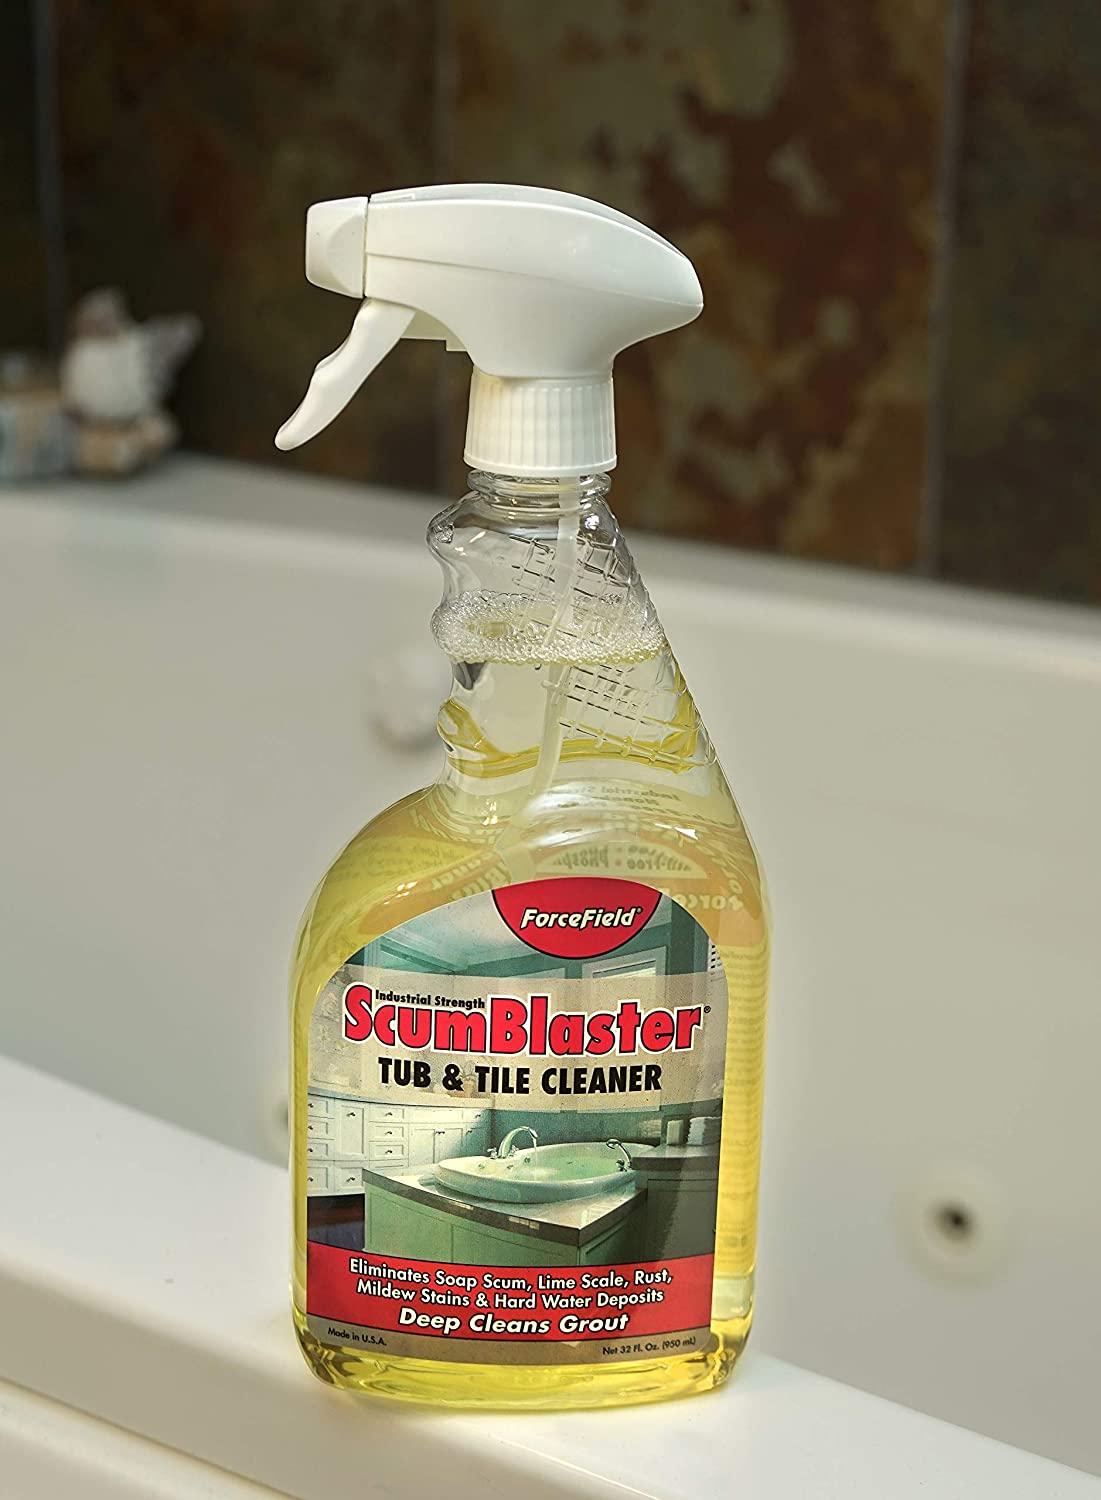 ForceField ScumBlaster Bathroom Cleaner Kit   Industrial Strength   Tile  And Grout Cleaner /u0026 Shower